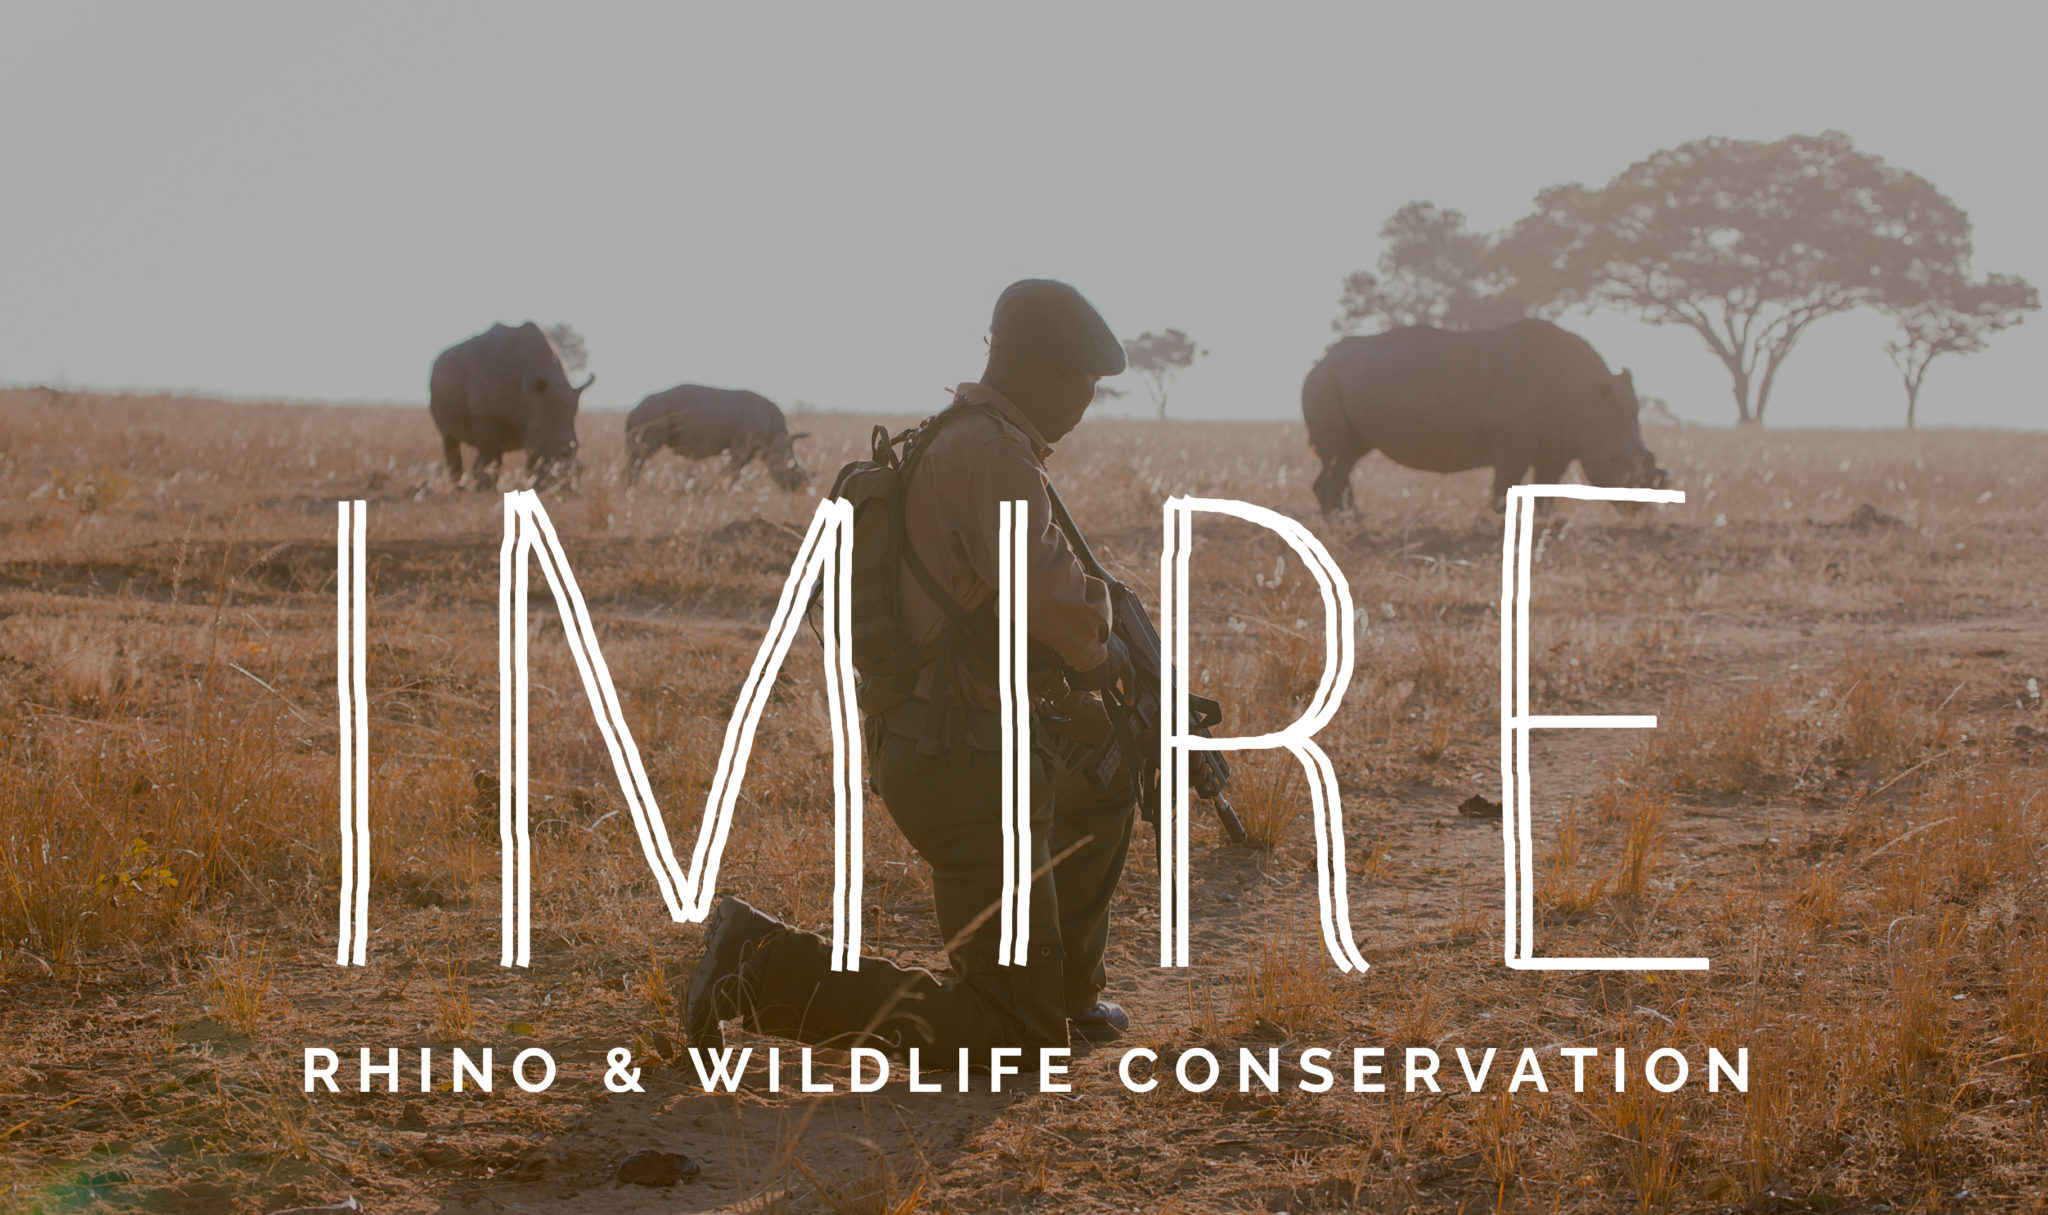 Imire Rhino & Wildlife Conservation Film by Marlina Moreno